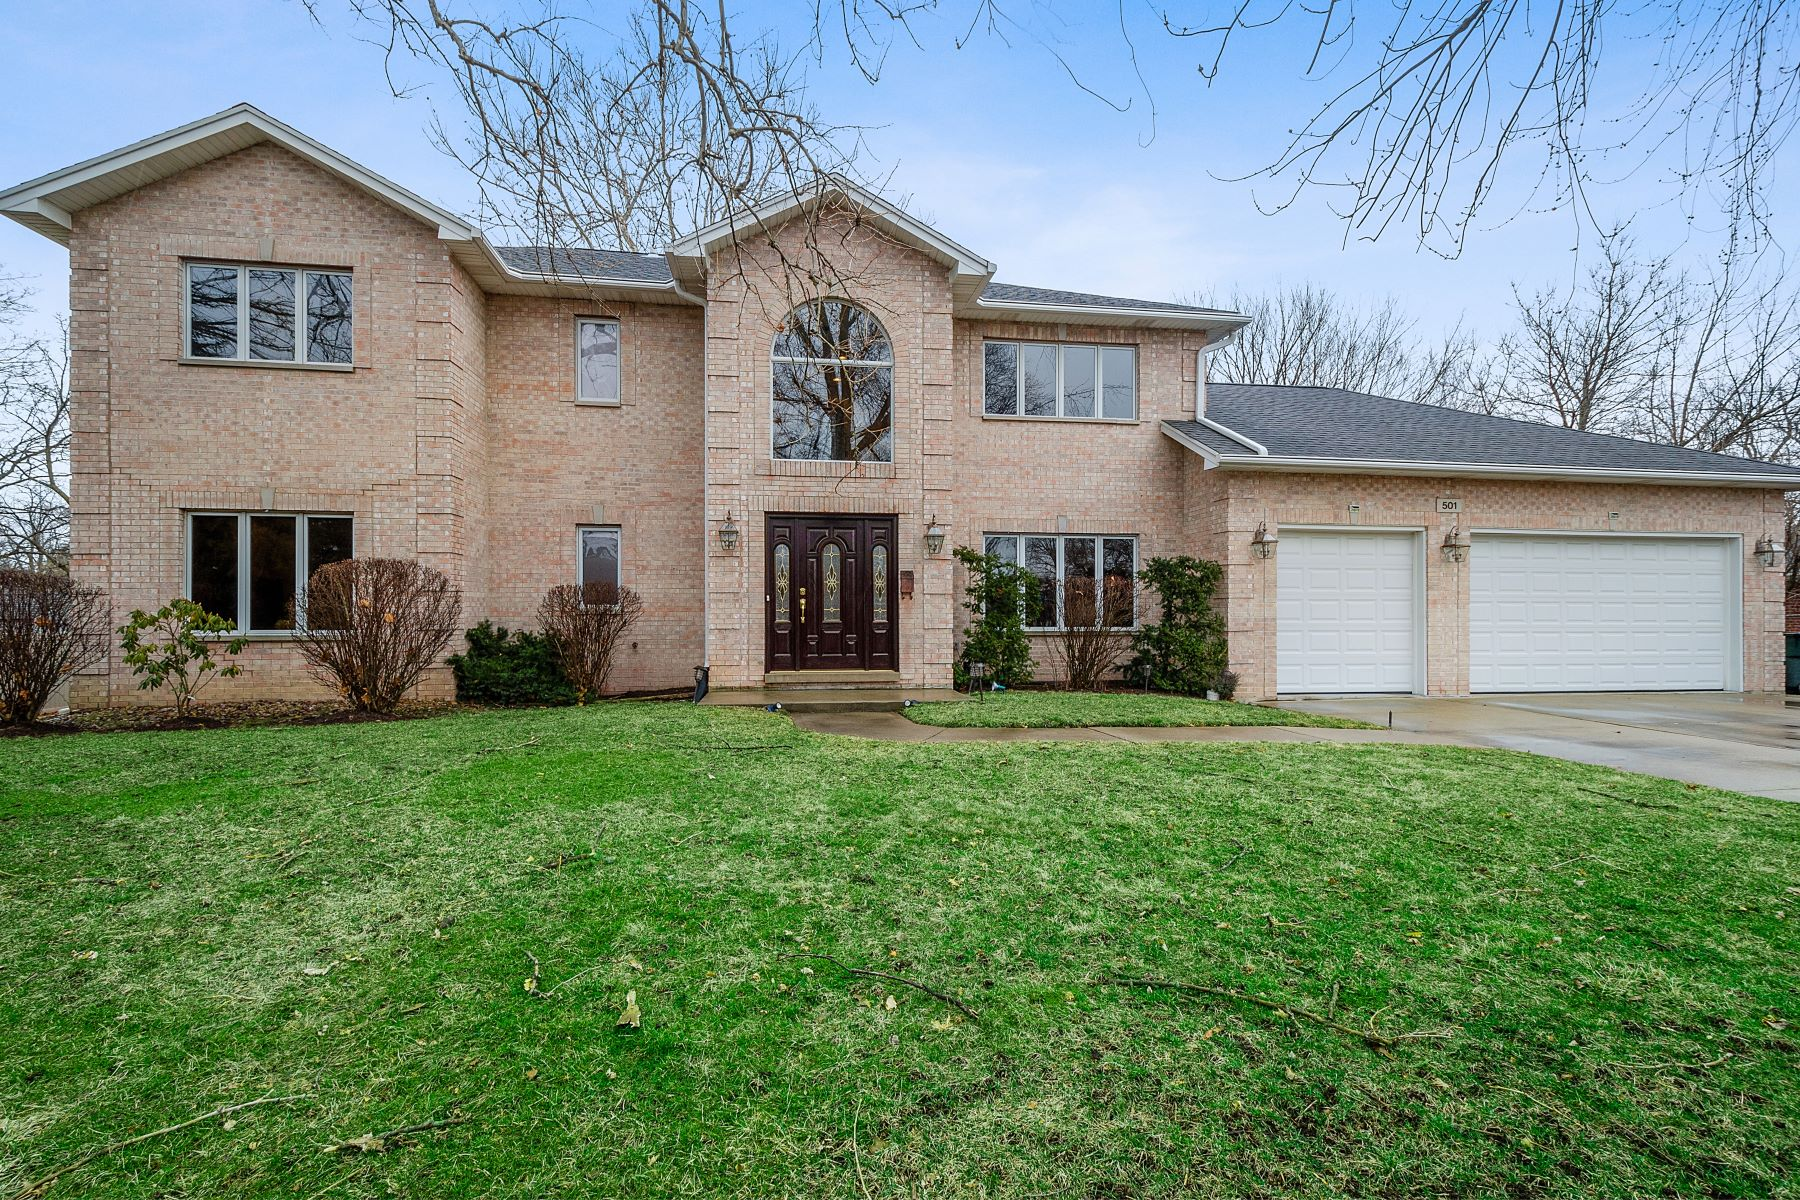 Single Family Homes for Active at Warm and Wonderful Home 501 Warren Road Glenview, Illinois 60025 United States